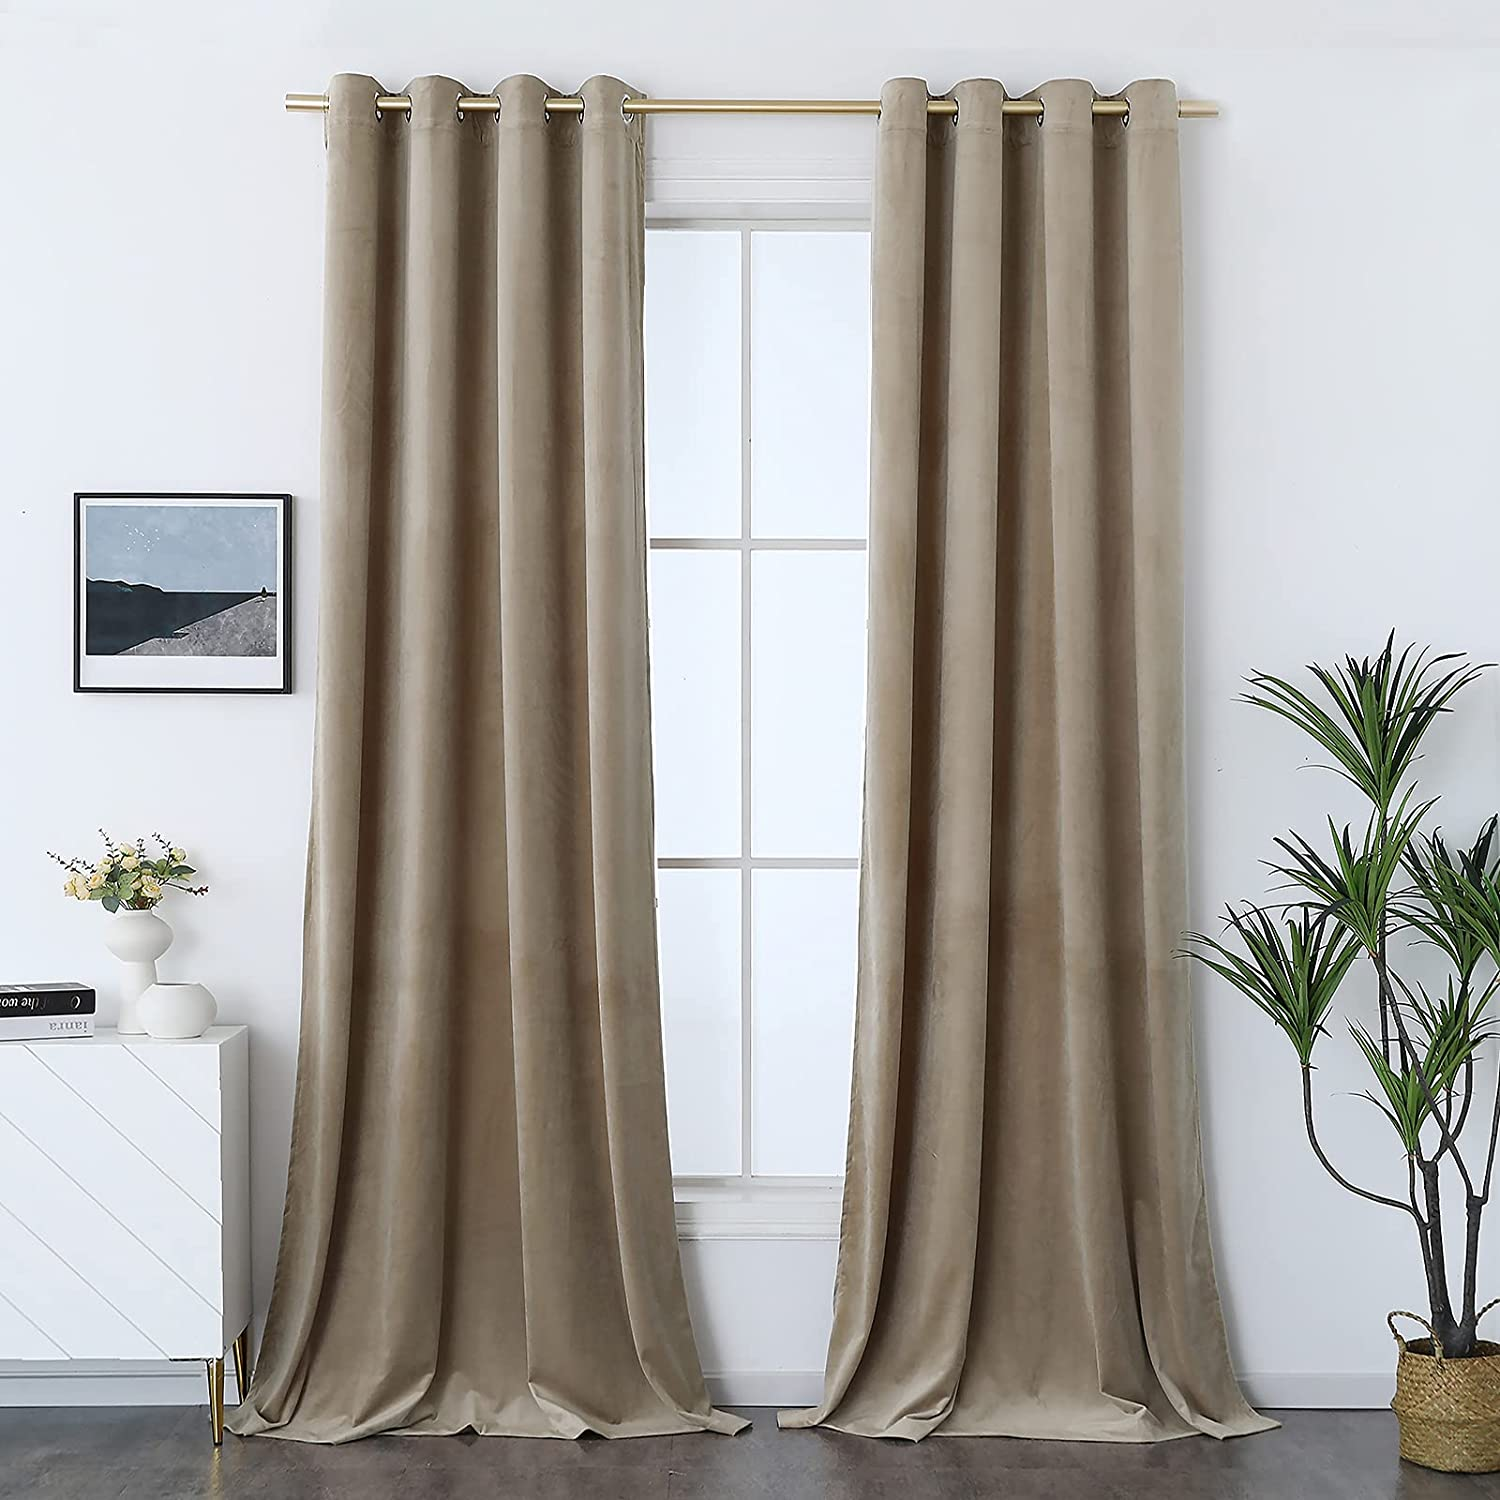 Timeper Room Darkening Curtain Panels - Luxury Decor Taupe Velvet Curtains with Grommet, Extra Long Privacy Assured for Home Office / Dining / Hall, Taupe, W52 x L108, 2 Panels